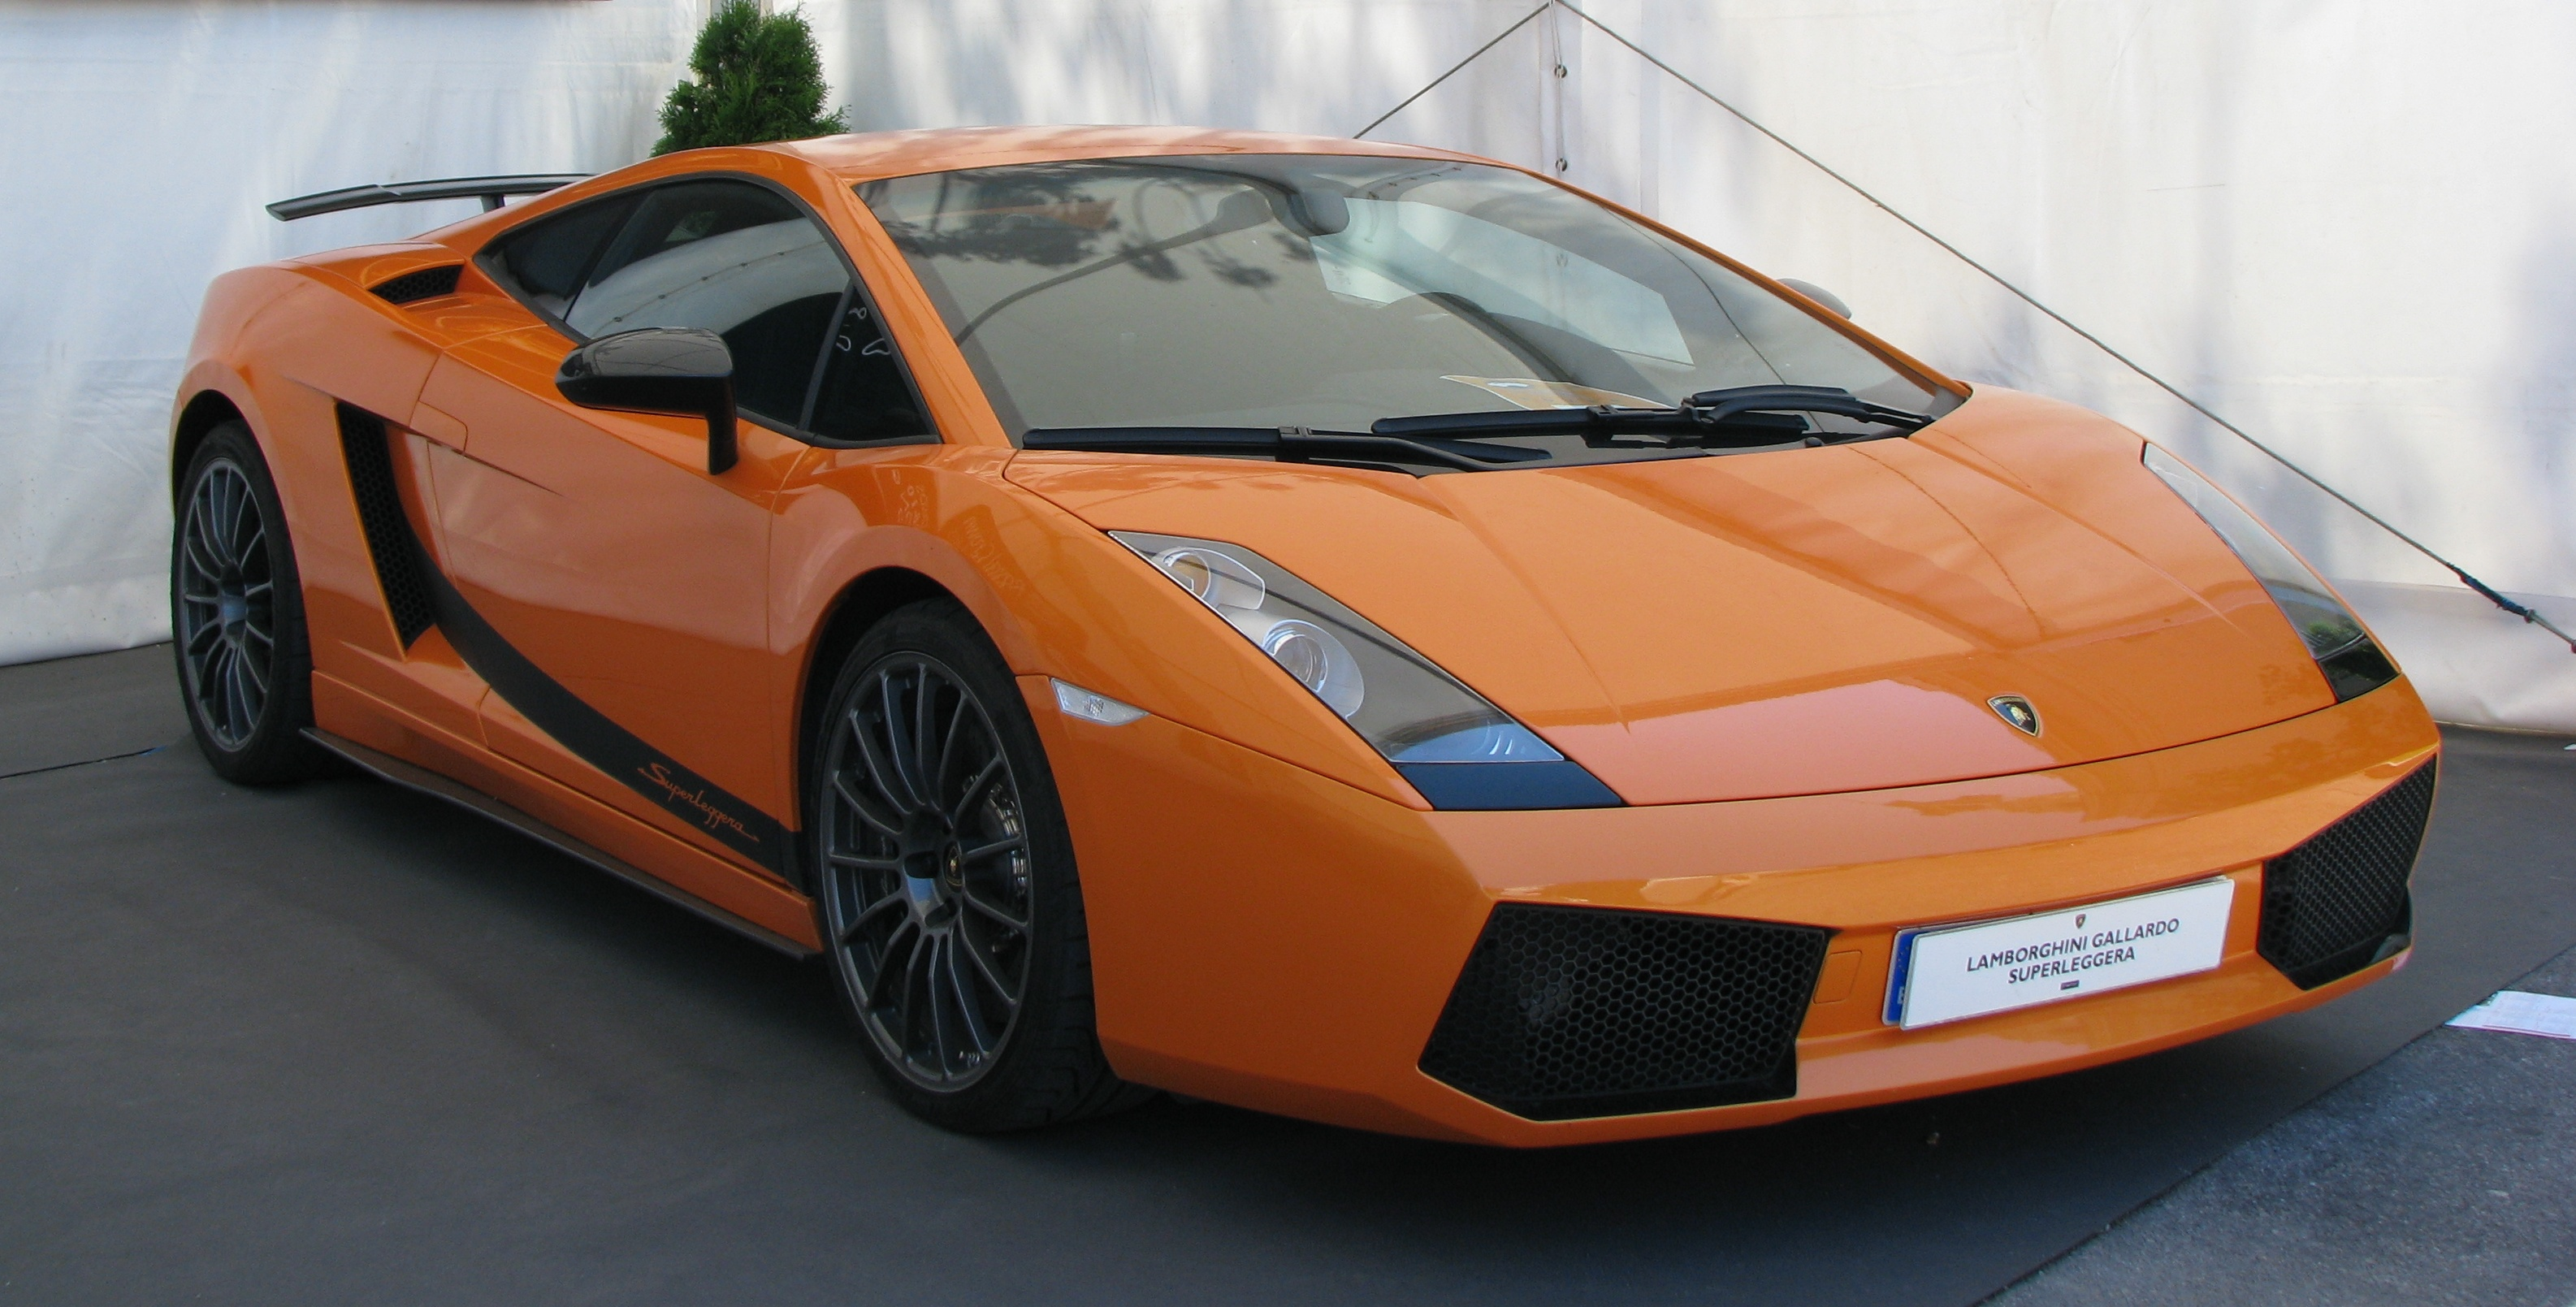 http://upload.wikimedia.org/wikipedia/commons/8/8a/Lamborghini_Gallardo_Superleggera_BCN2009.jpg